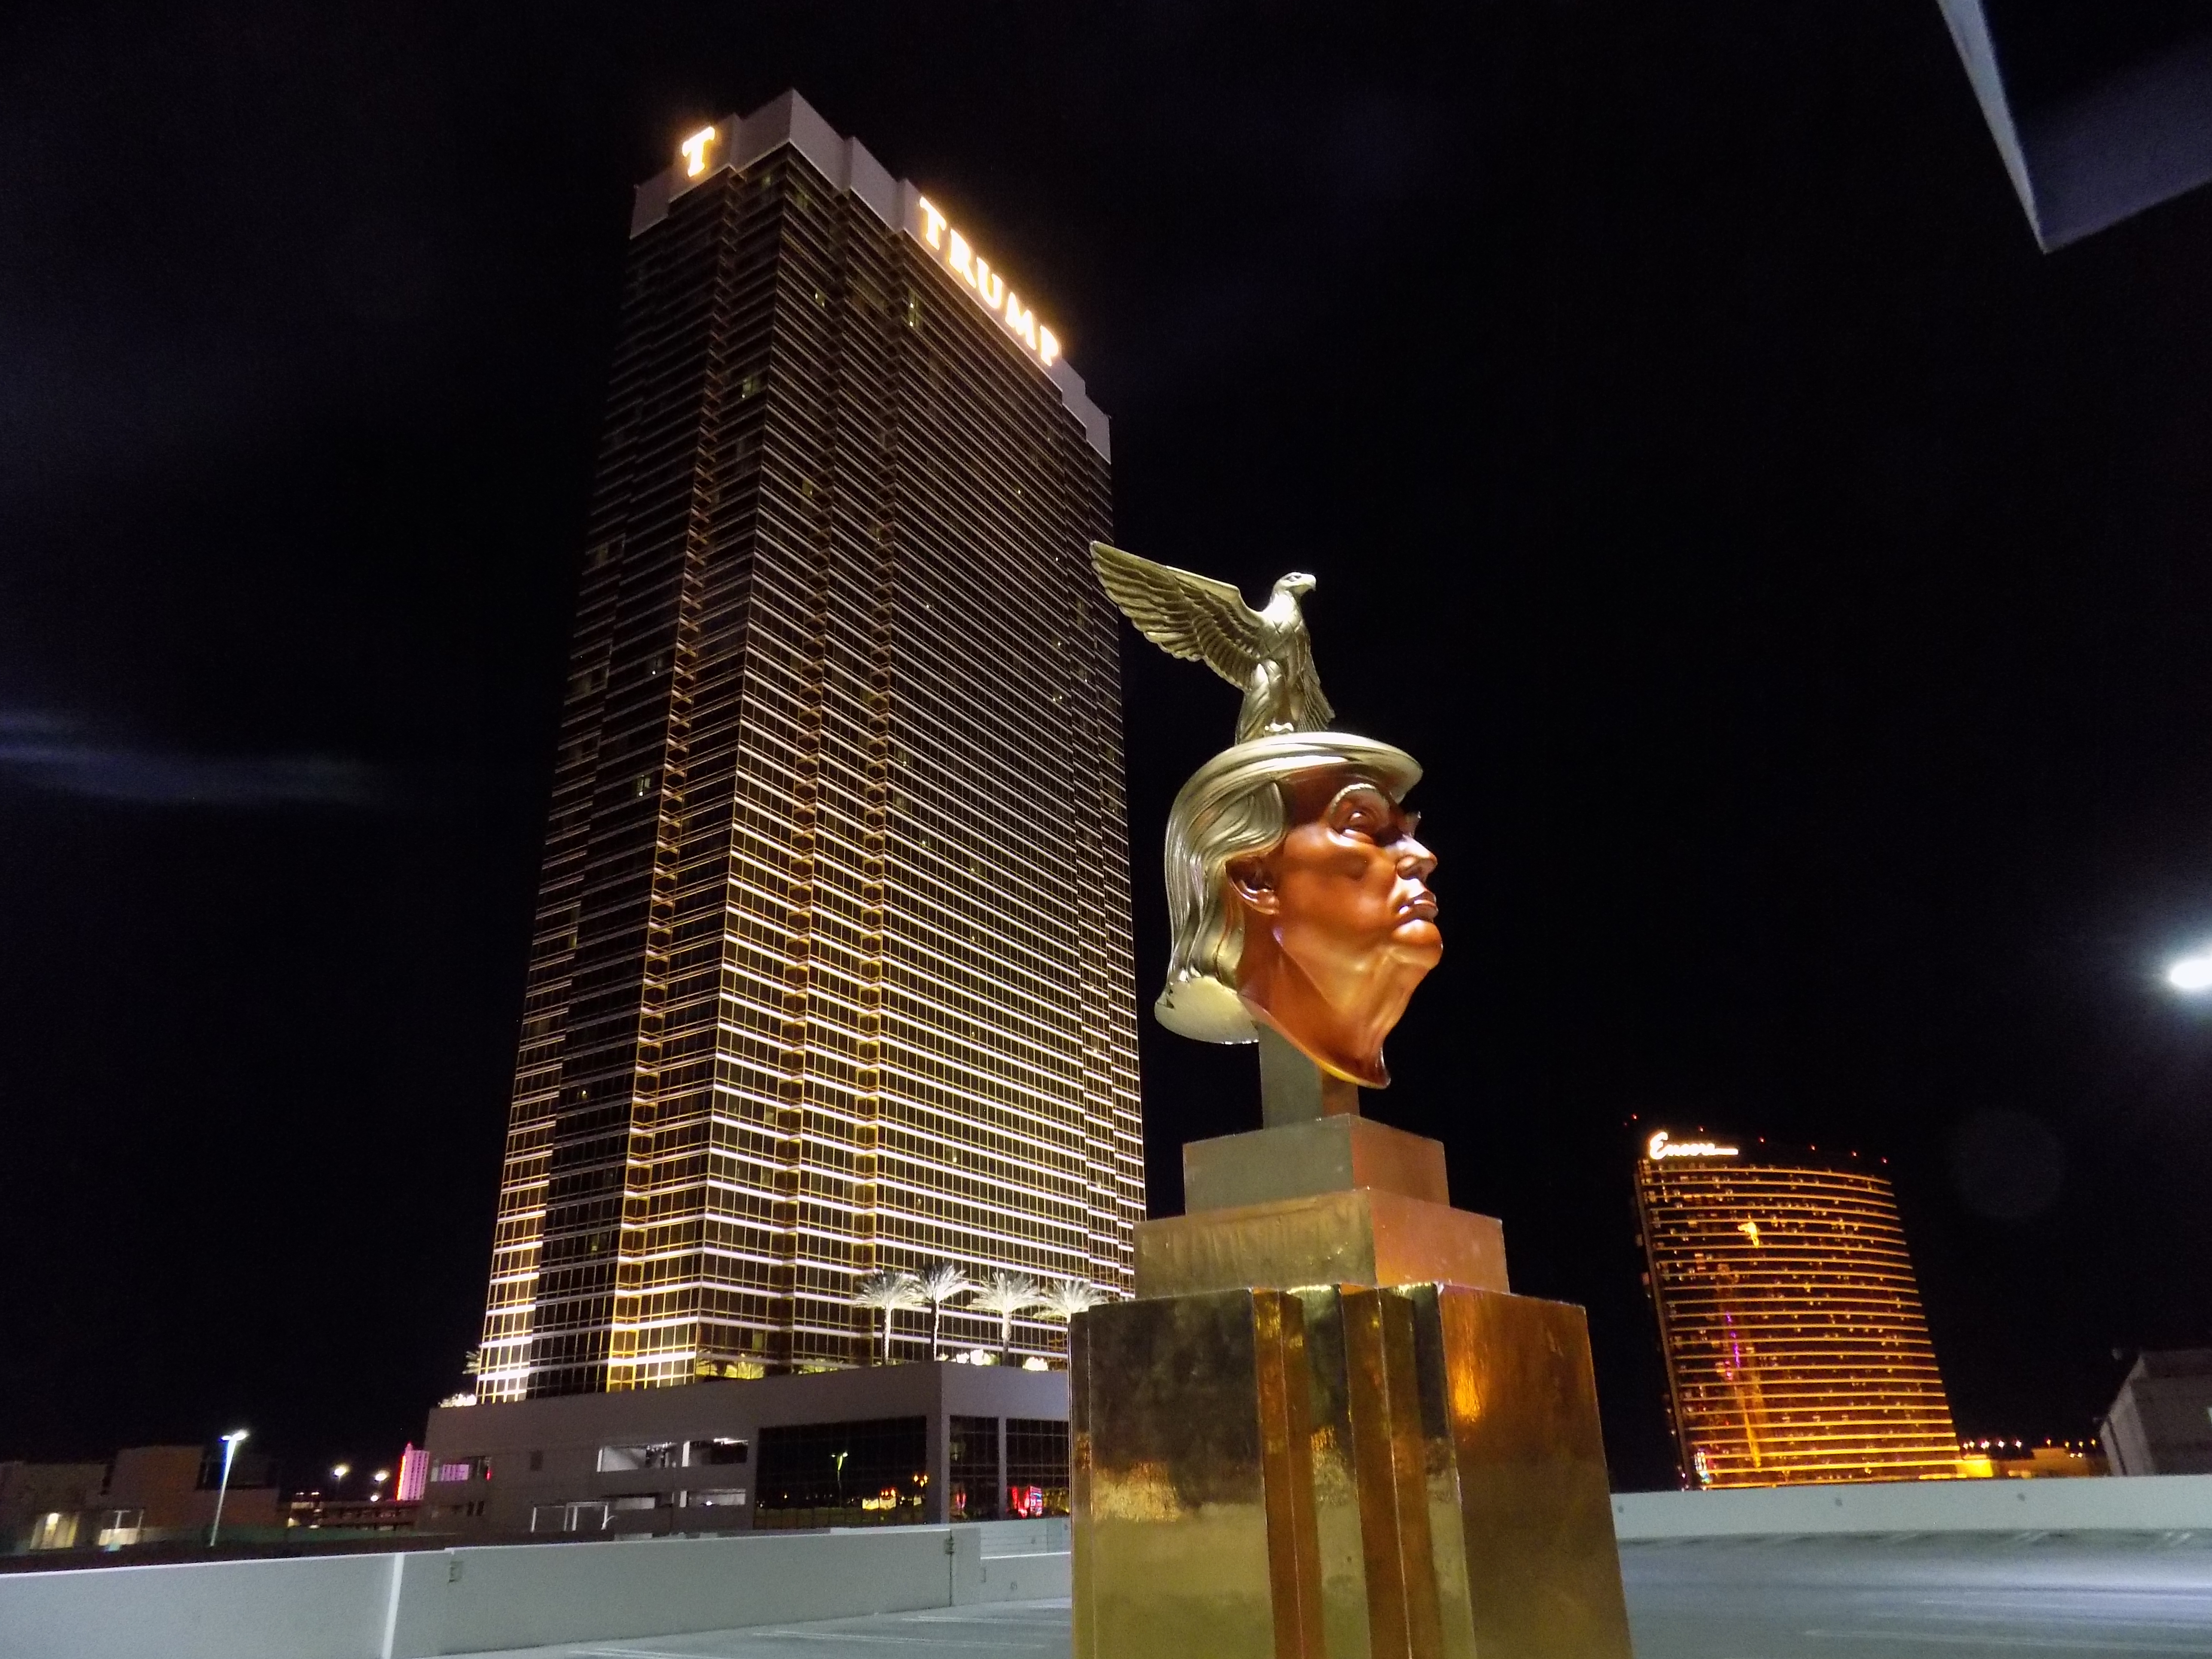 06-Trumps-Monument-to-Self